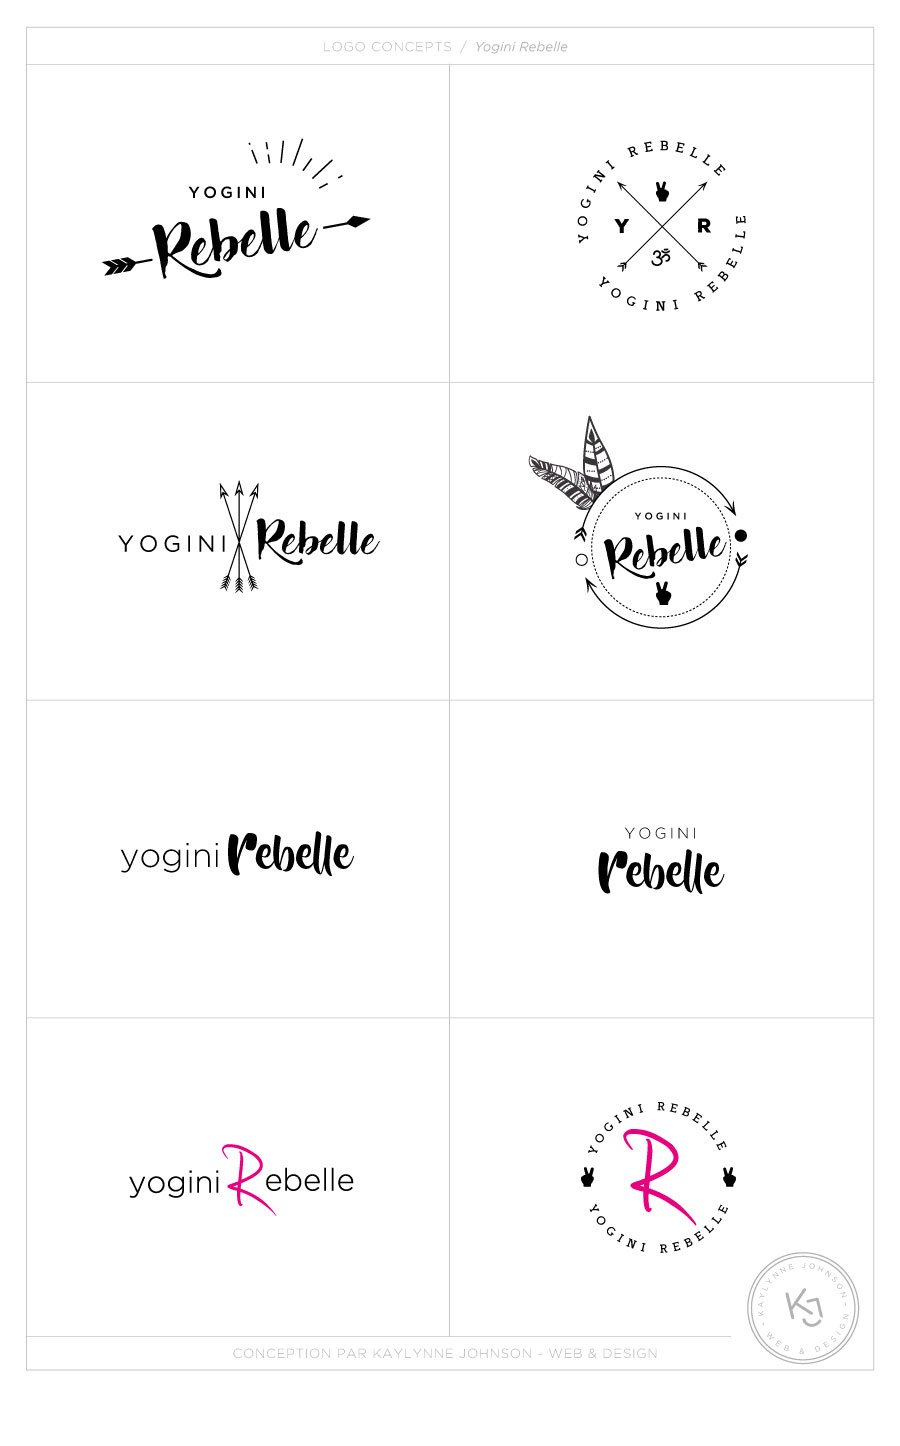 Yogini Rebelle - logo concepts - Branding | Design by Kaylynne Johnson - web & design | www.kaylynnejohnson.com